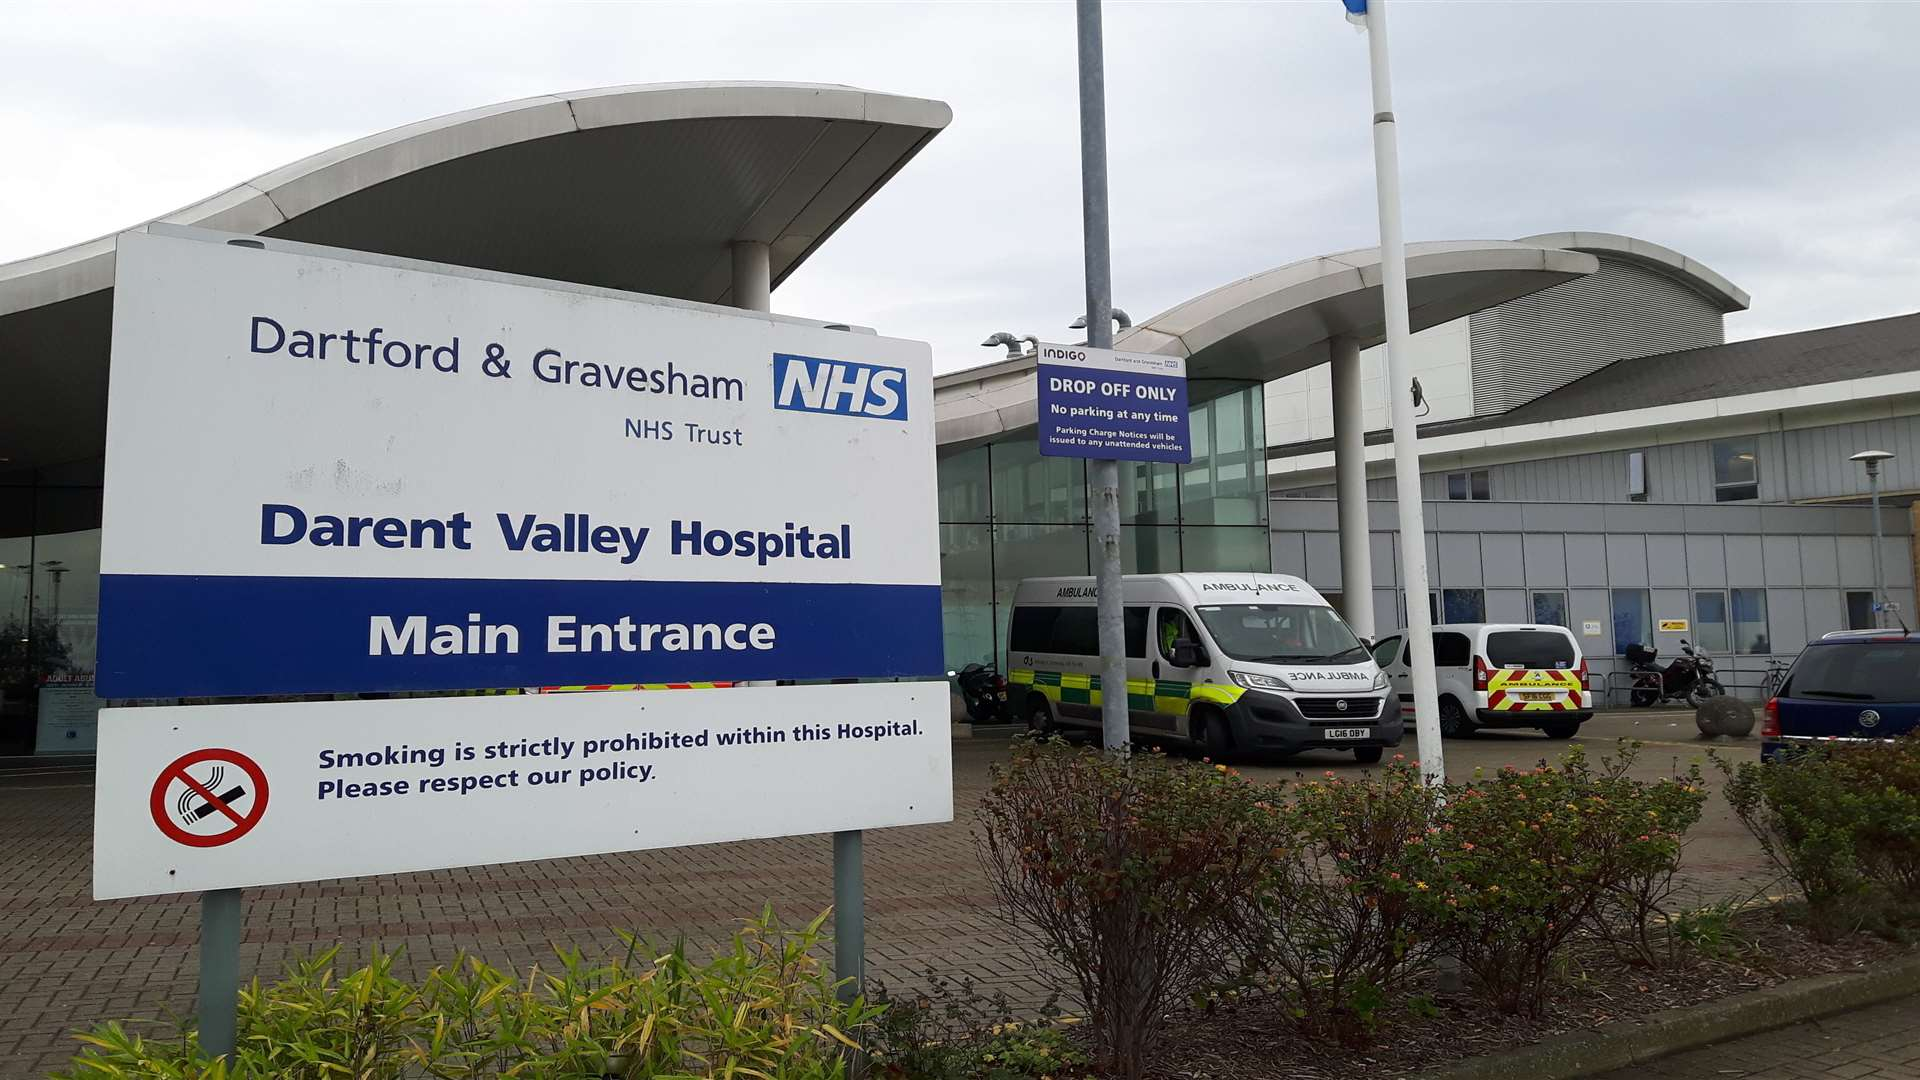 Carillion provided services at Darent Valley Hospital in Dartford